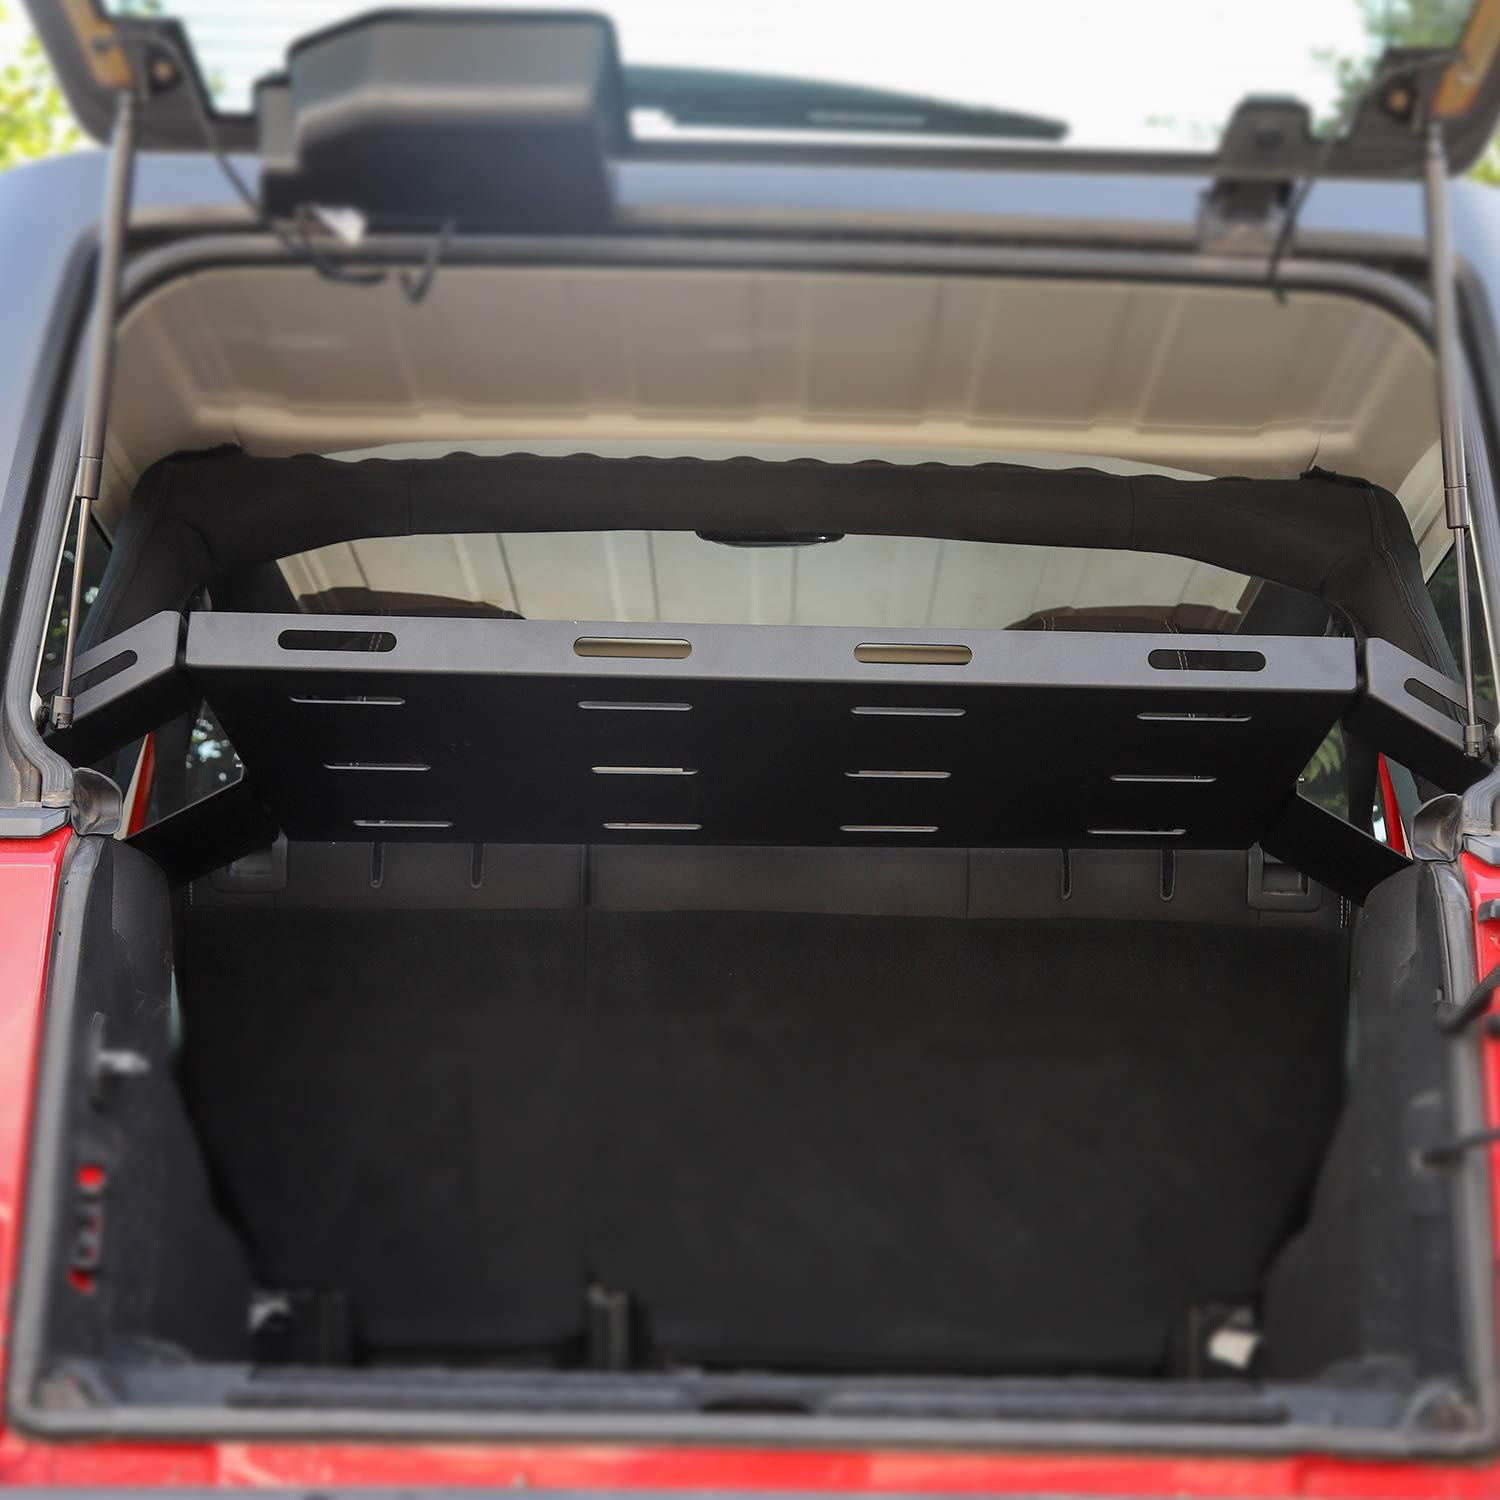 RT-TCZ for Jeep JK JL Interior Rear Cargo Basket Rack Solid Metal Luggage Storage Carrier for 2011-2018 Jeep Wrangler JK /& 2018-2020 JL Unlimited Sahara Sport Rubicon Accessories